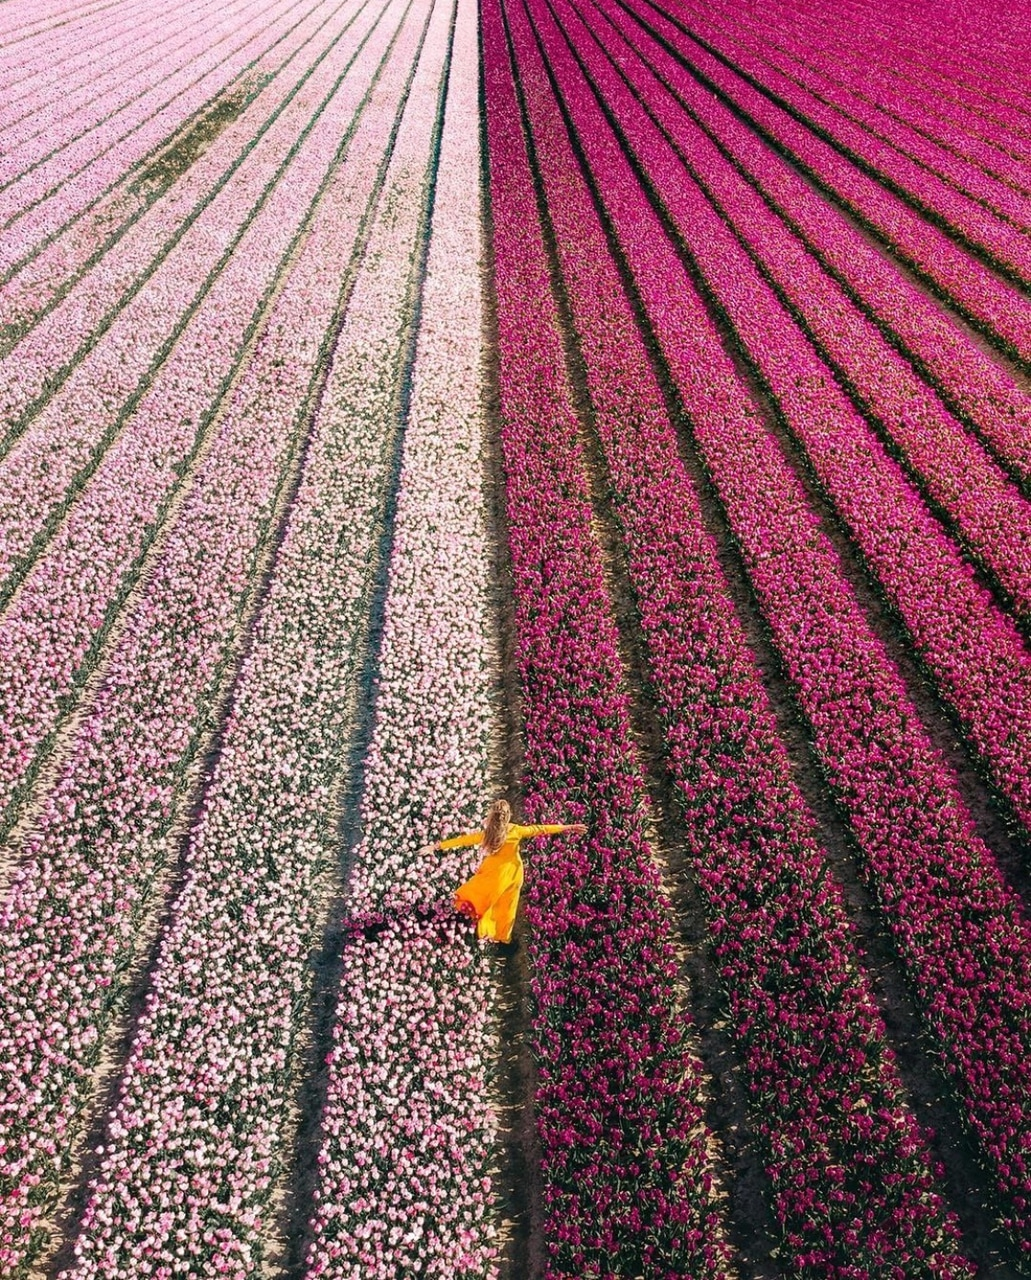 voyage, flowers field, pink and life